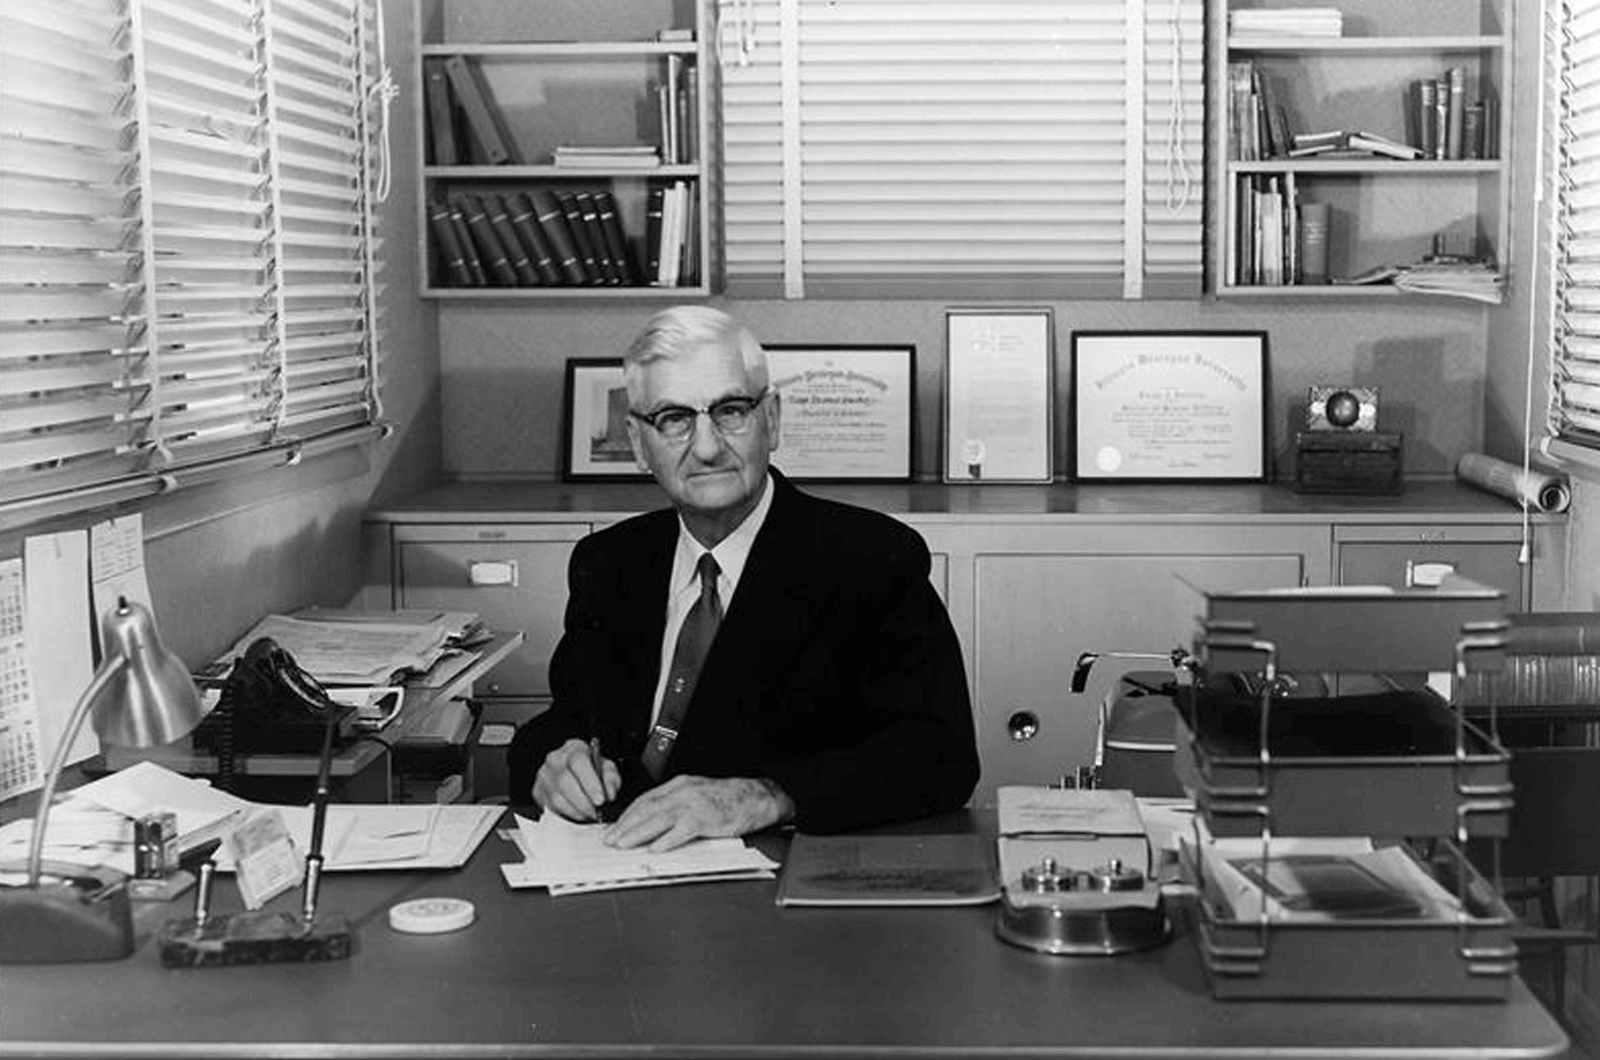 Toastmasters International founder Ralph C. Smedley sitting at his desk